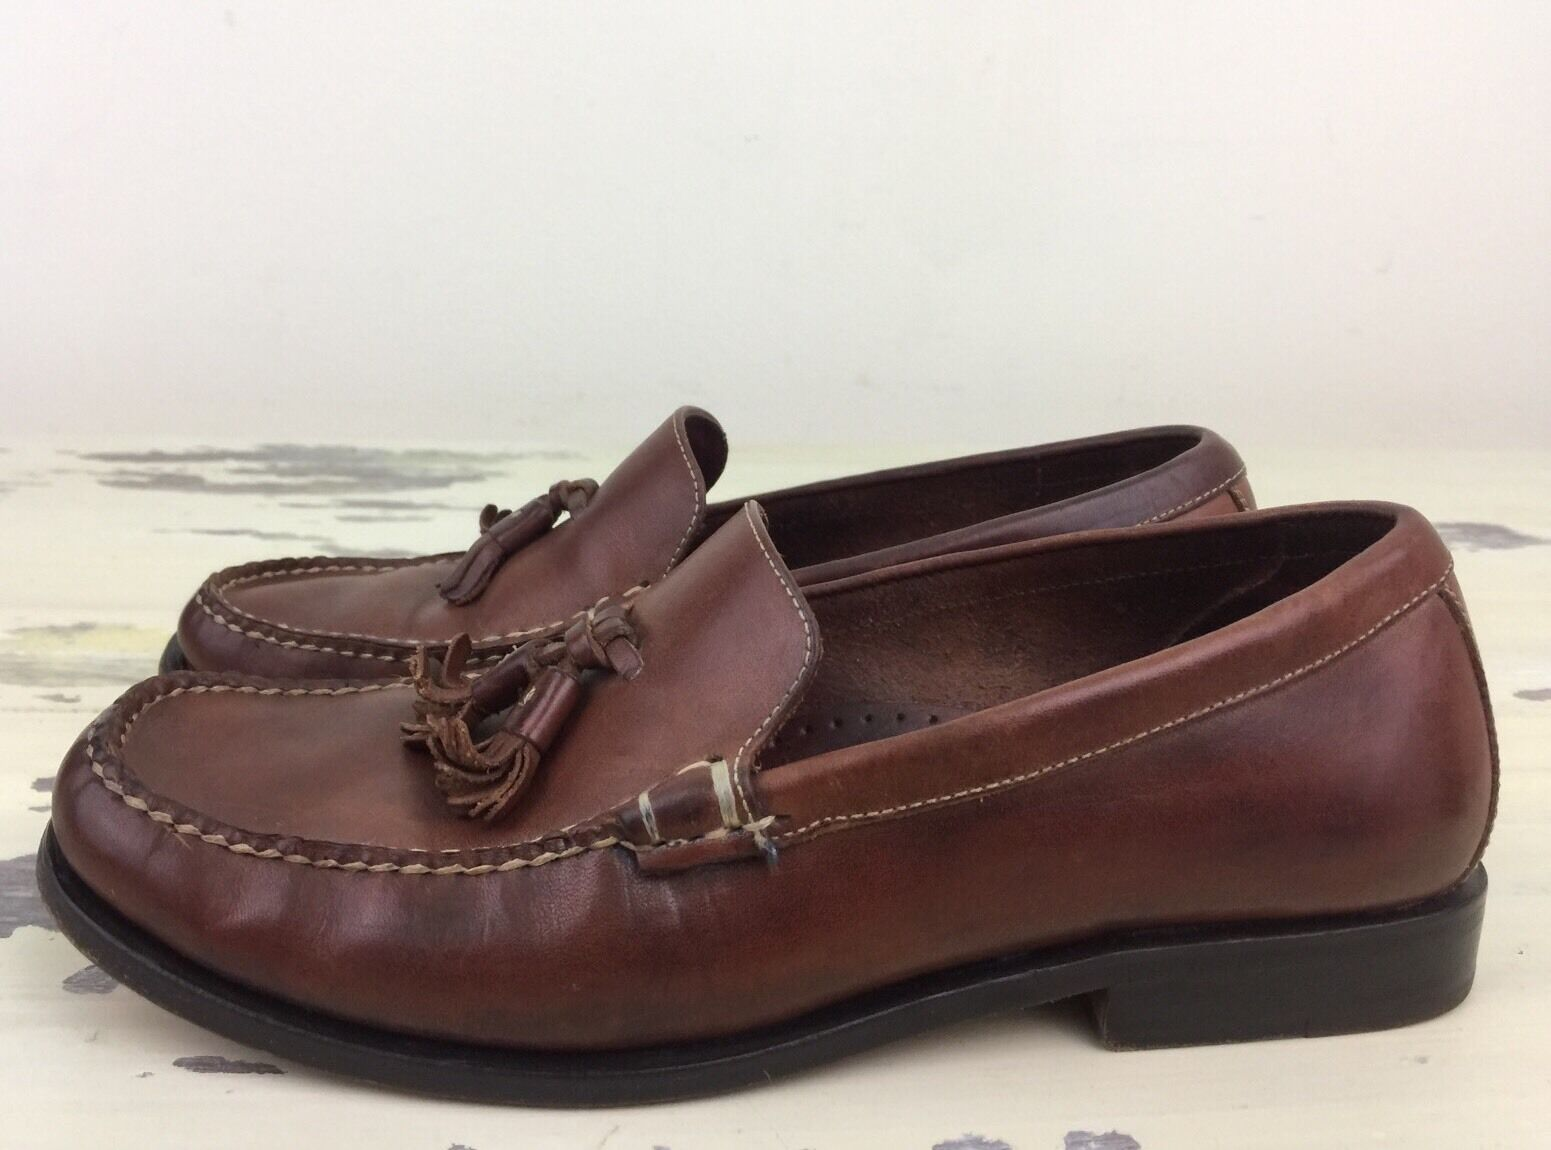 COLE HAAN COUNTRY - Womens Brown Leather Tassel Slip-on Loafer shoes, Sz 6 B